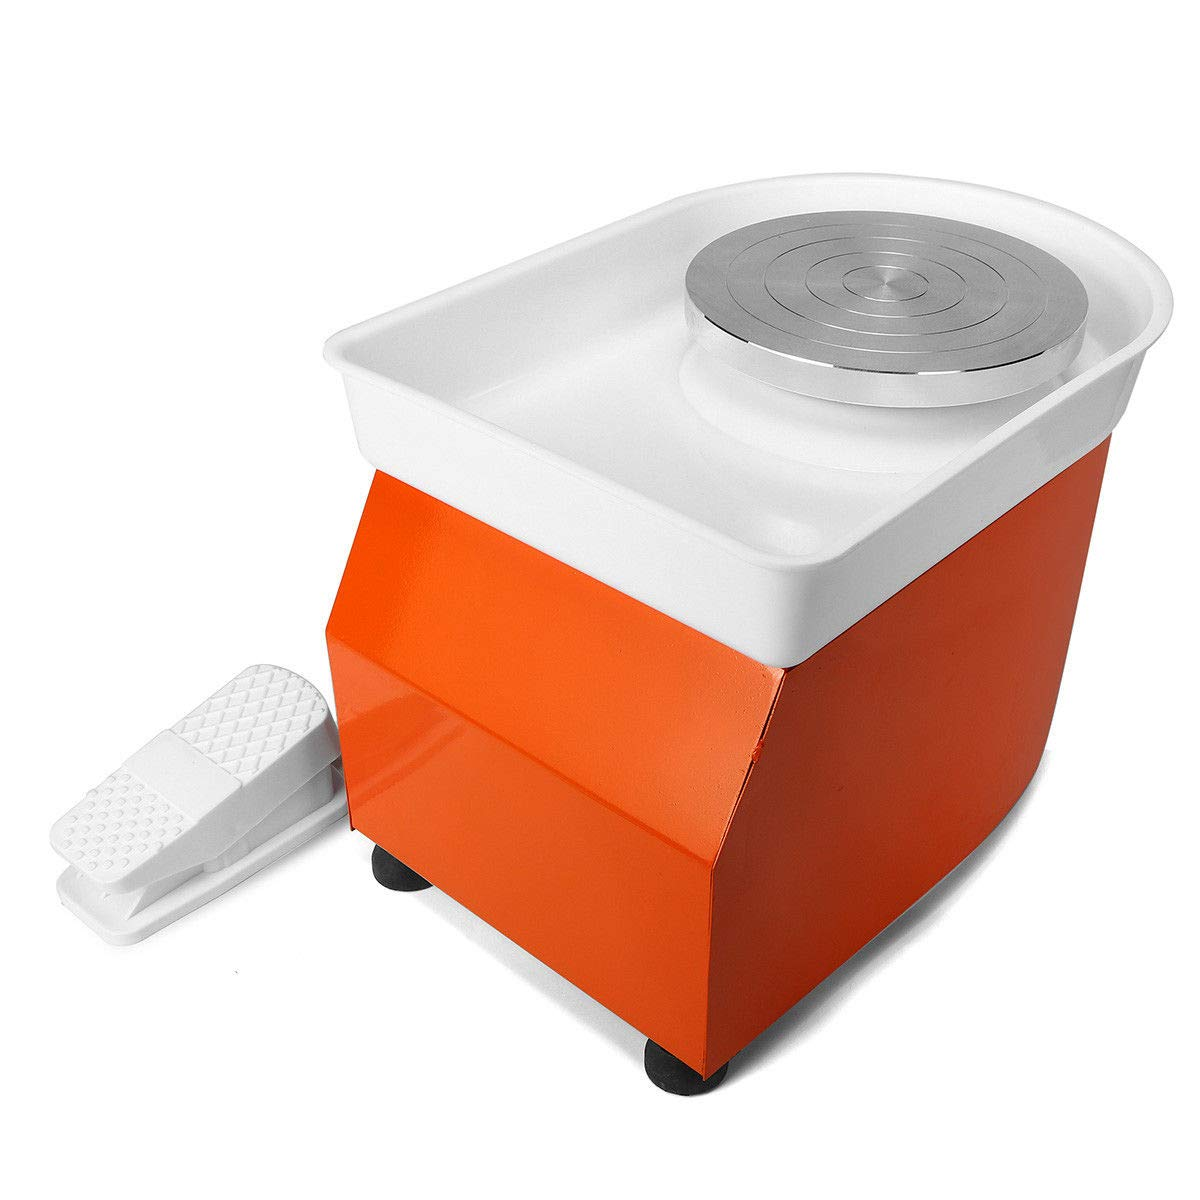 110V 350W Electric Pottery Wheel Machine with Foot Pedal Ceramic Work Clay Craft Electric Pottery Wheel DIY Clay Tool for Adults